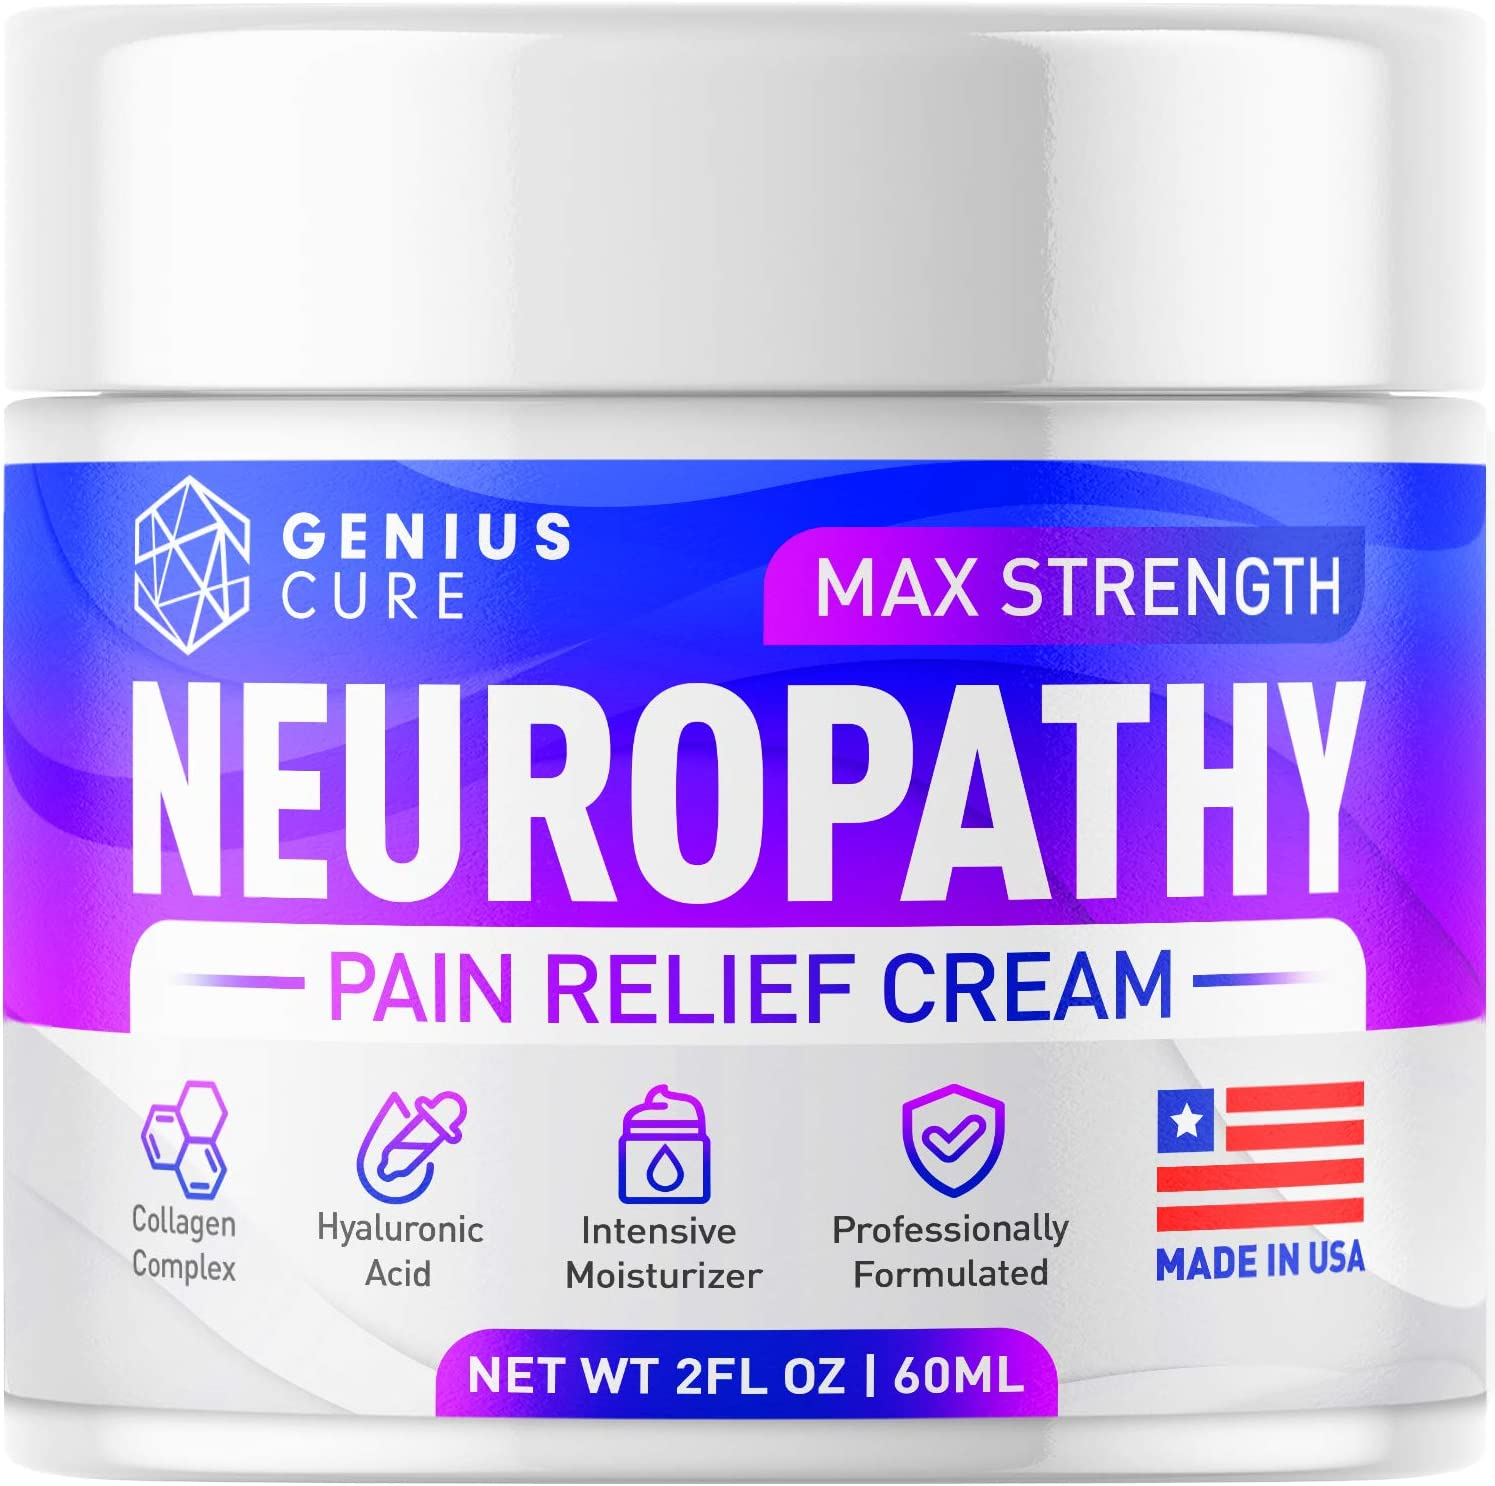 Genius Neuropathy Nerve Pain Relief Cream - Maximum Strength Relief Cream for Foot, Hands, Legs, Toes Includes Arnica, Vitamin B6, Aloe Vera, MSM - Scientifically Developed for Effective Relief 2oz